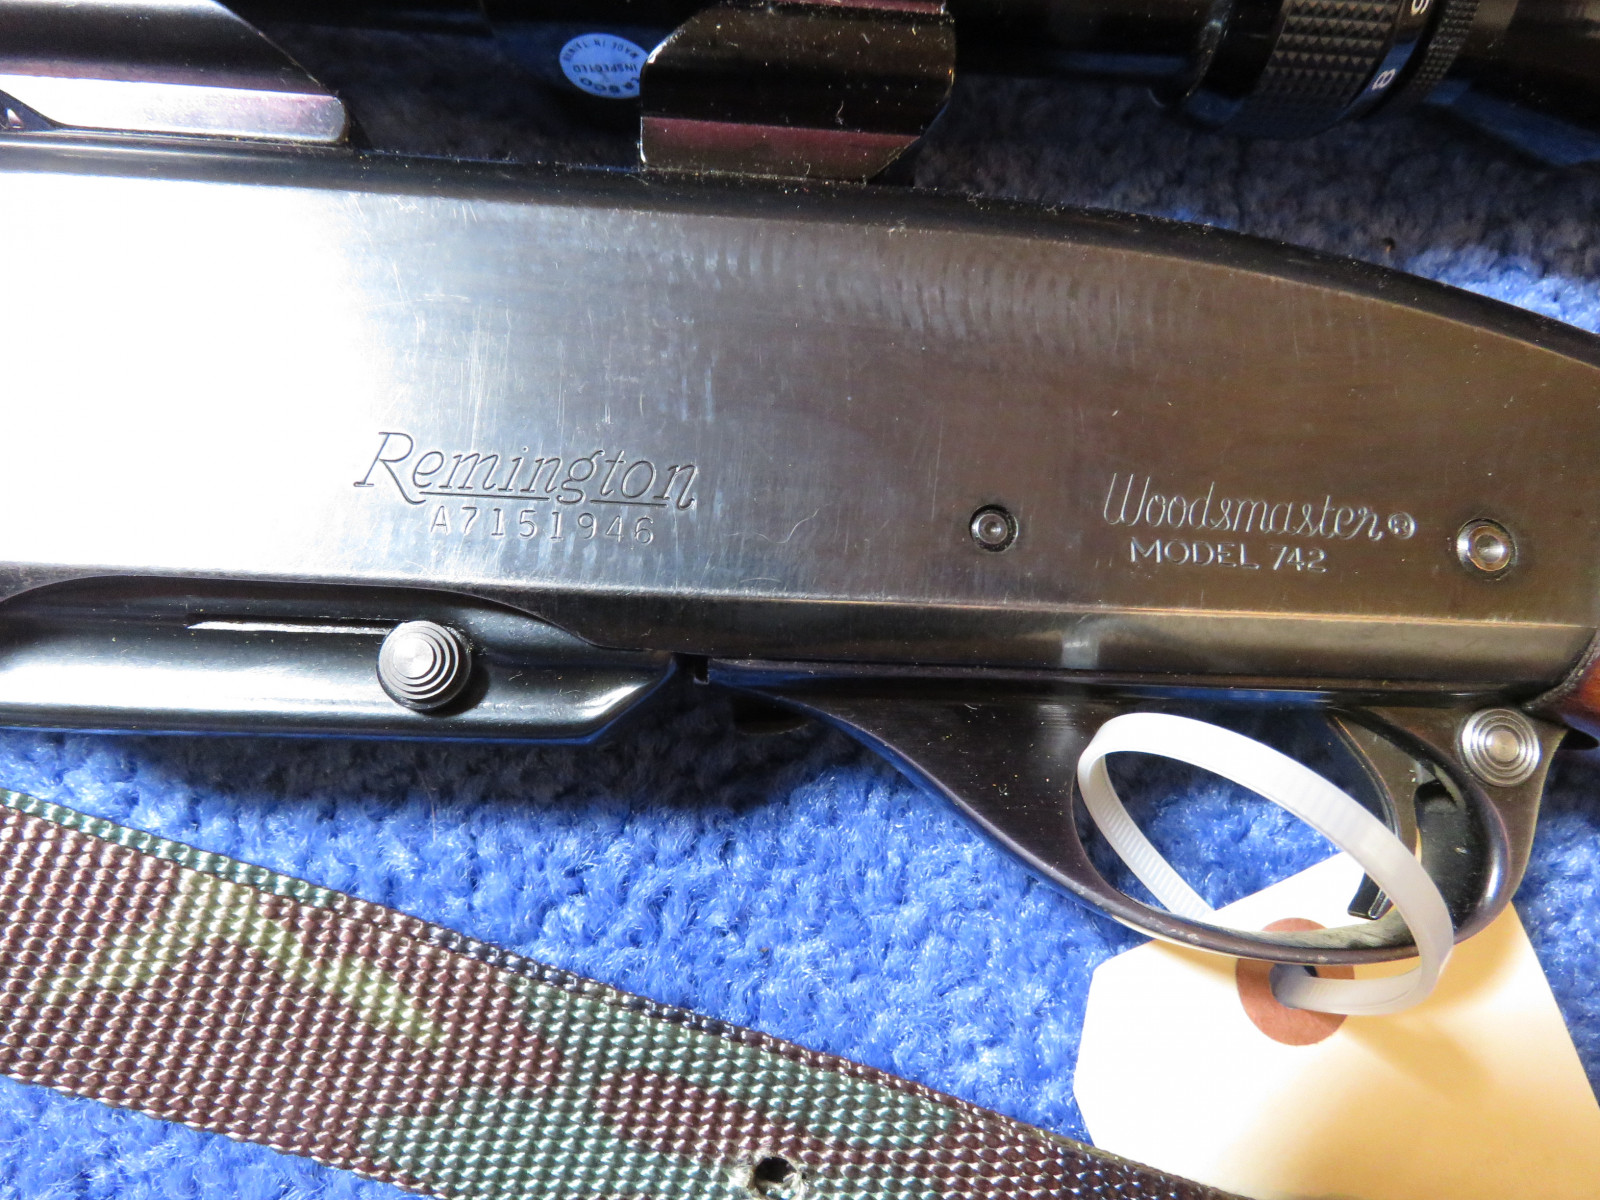 Remington 30.06 Model 742 Woodmaster Rifle - Image 4